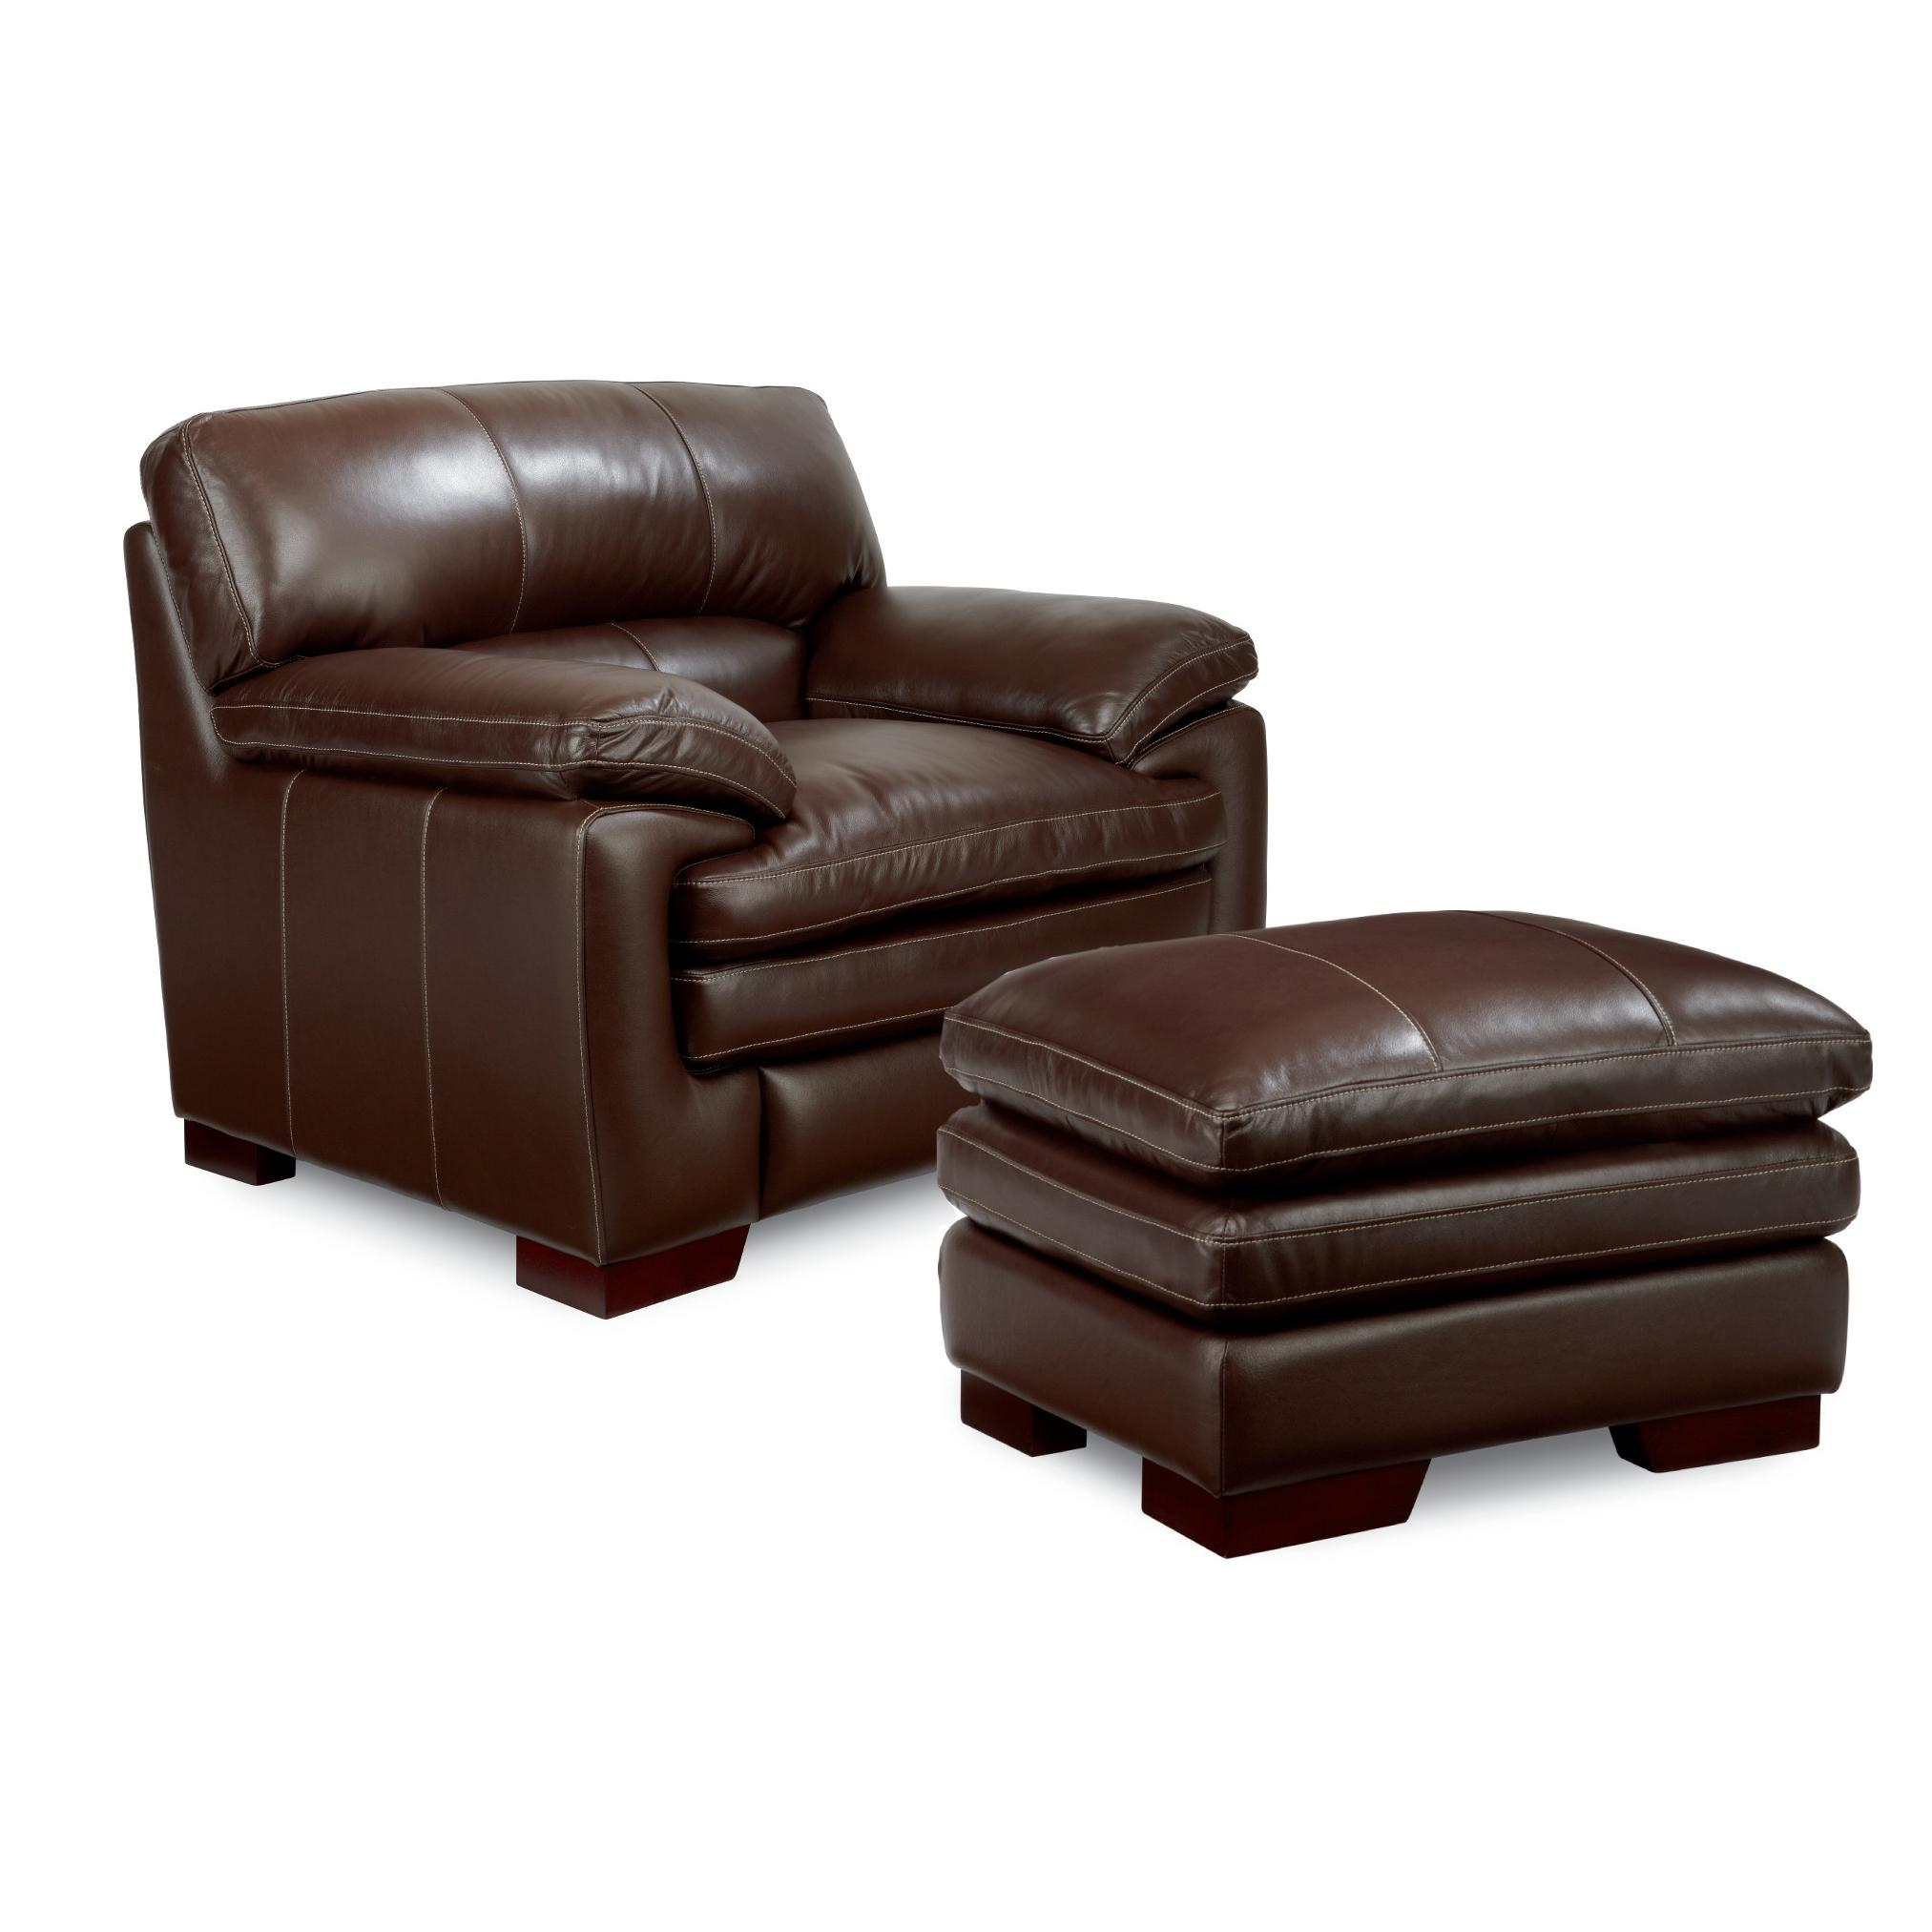 Living Room Chair With Ottoman Casual Upholstered Stationary Chair And Ottoman Set By La Z Boy